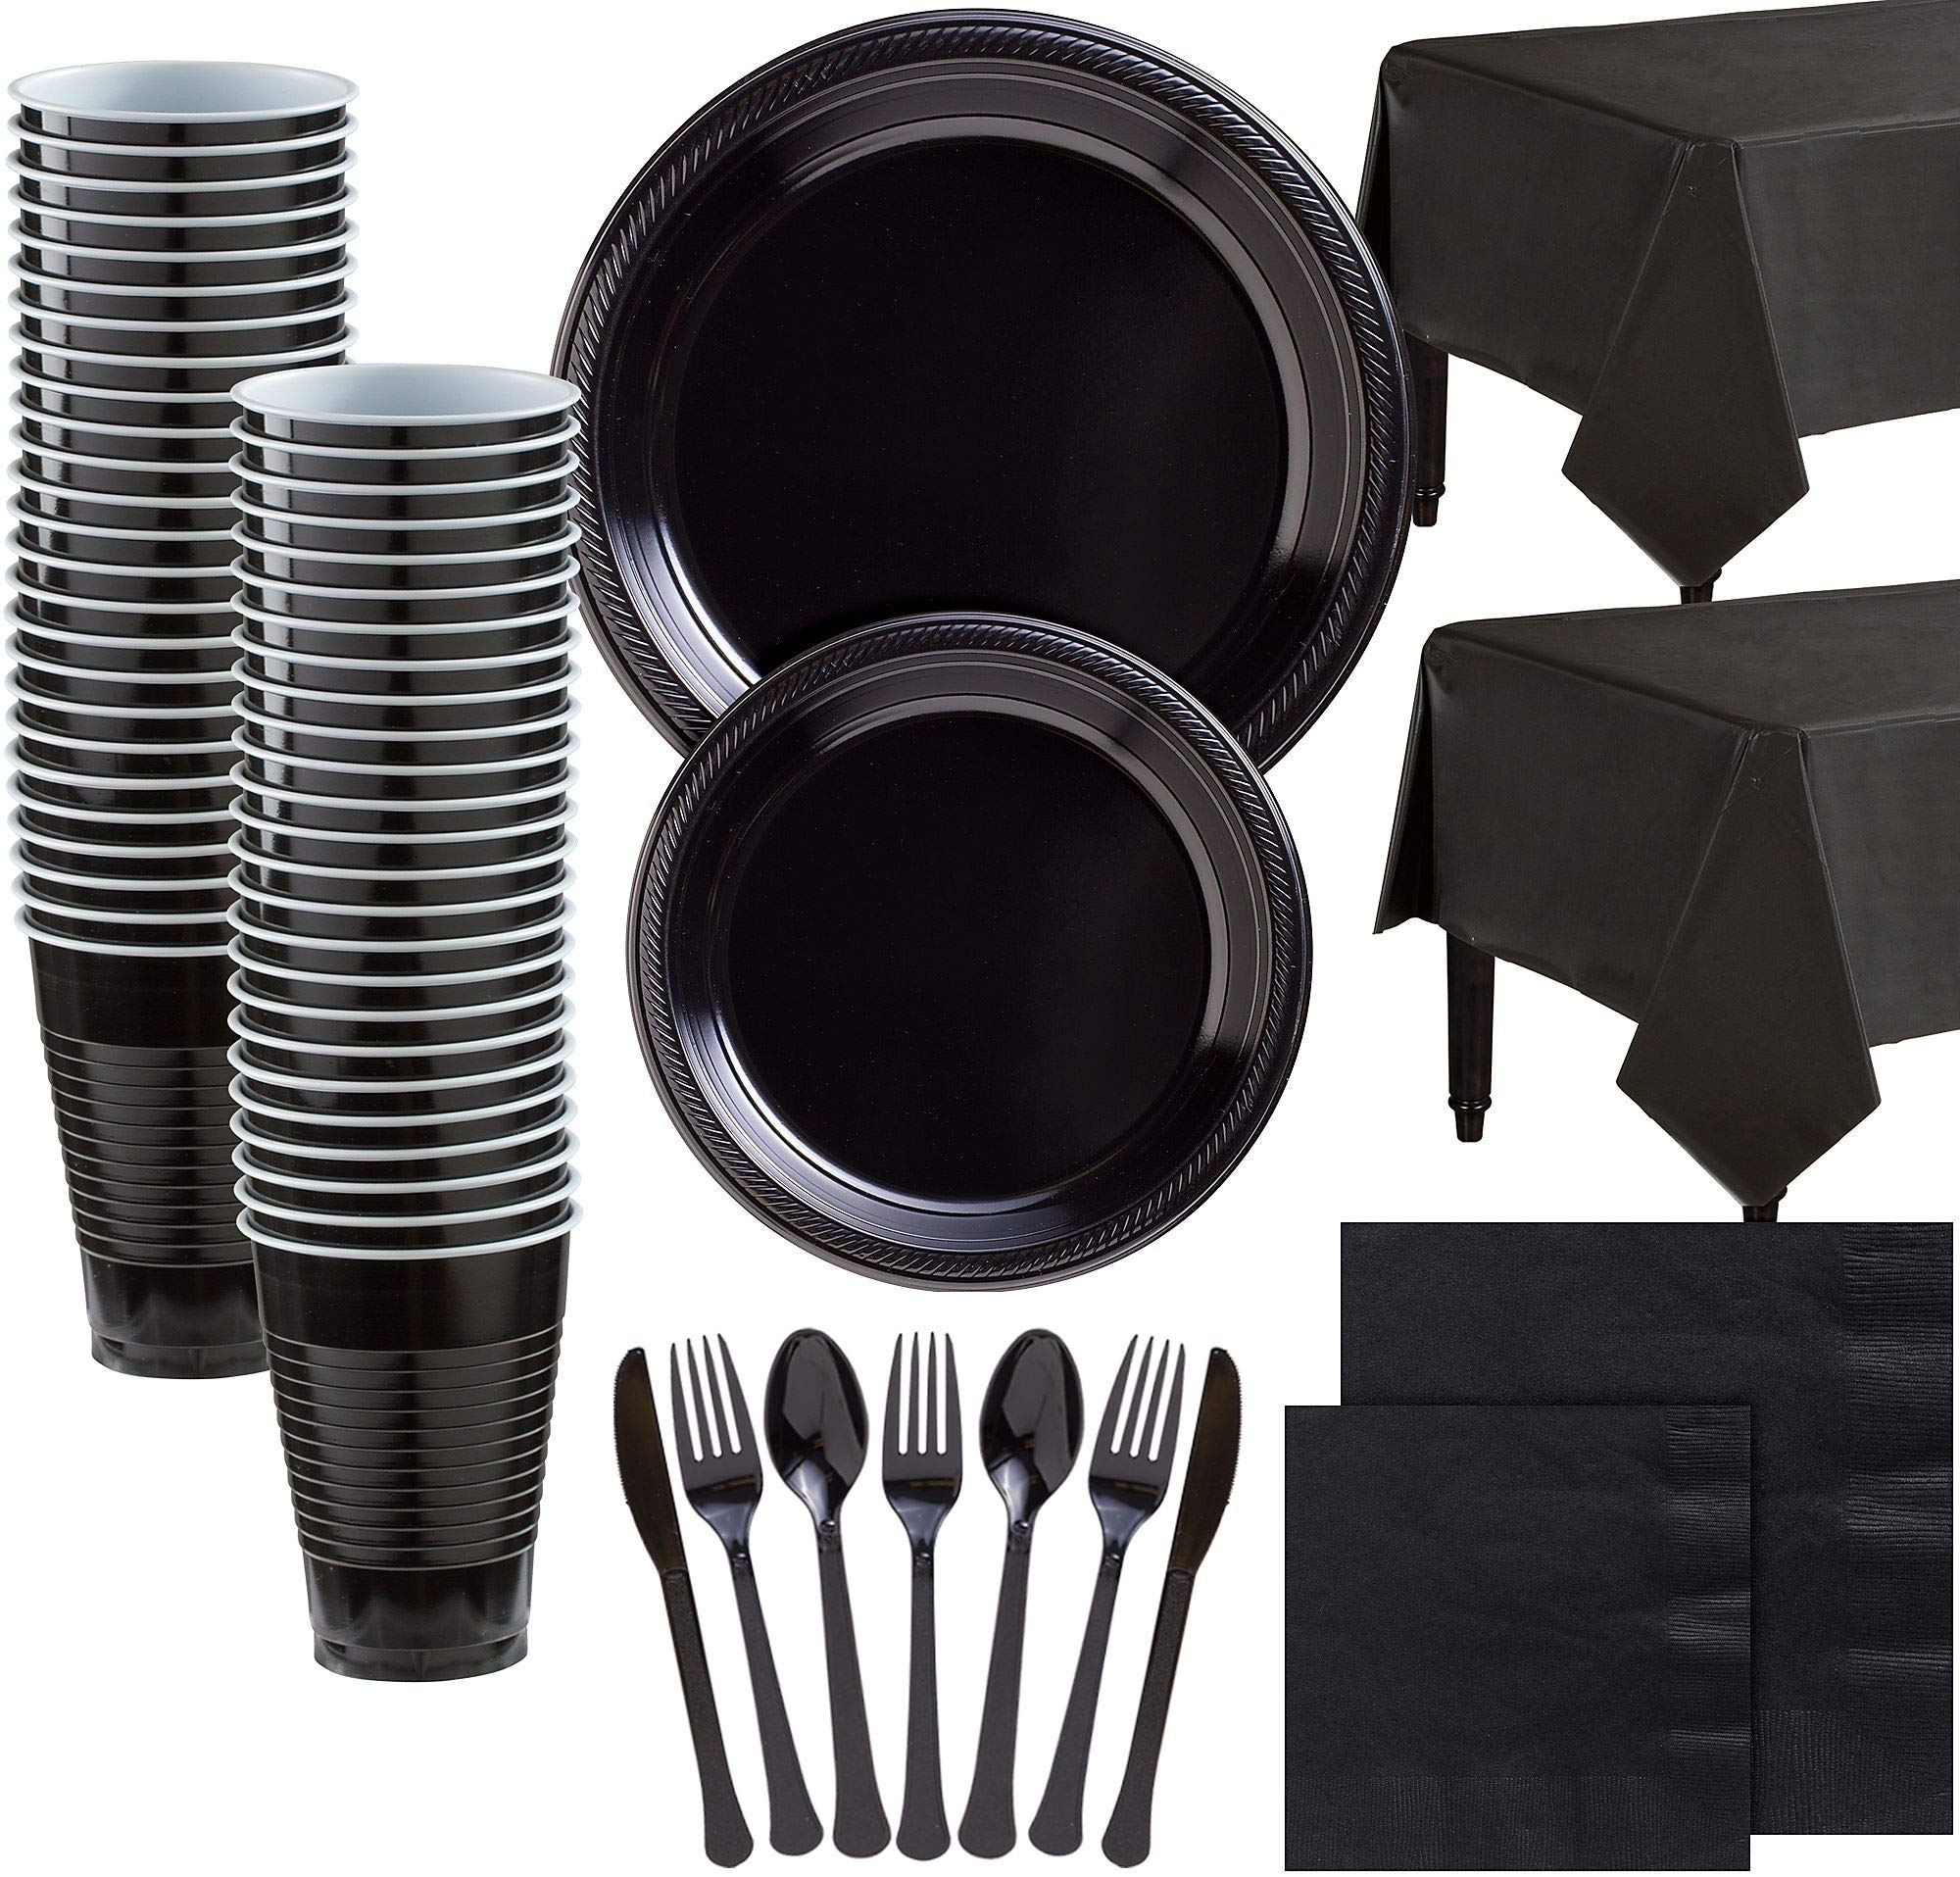 Party City Black Plastic Tableware Kit for 100 Guests, 852 Pieces, Includes Plates, Napkins, Table Covers, and Utensils